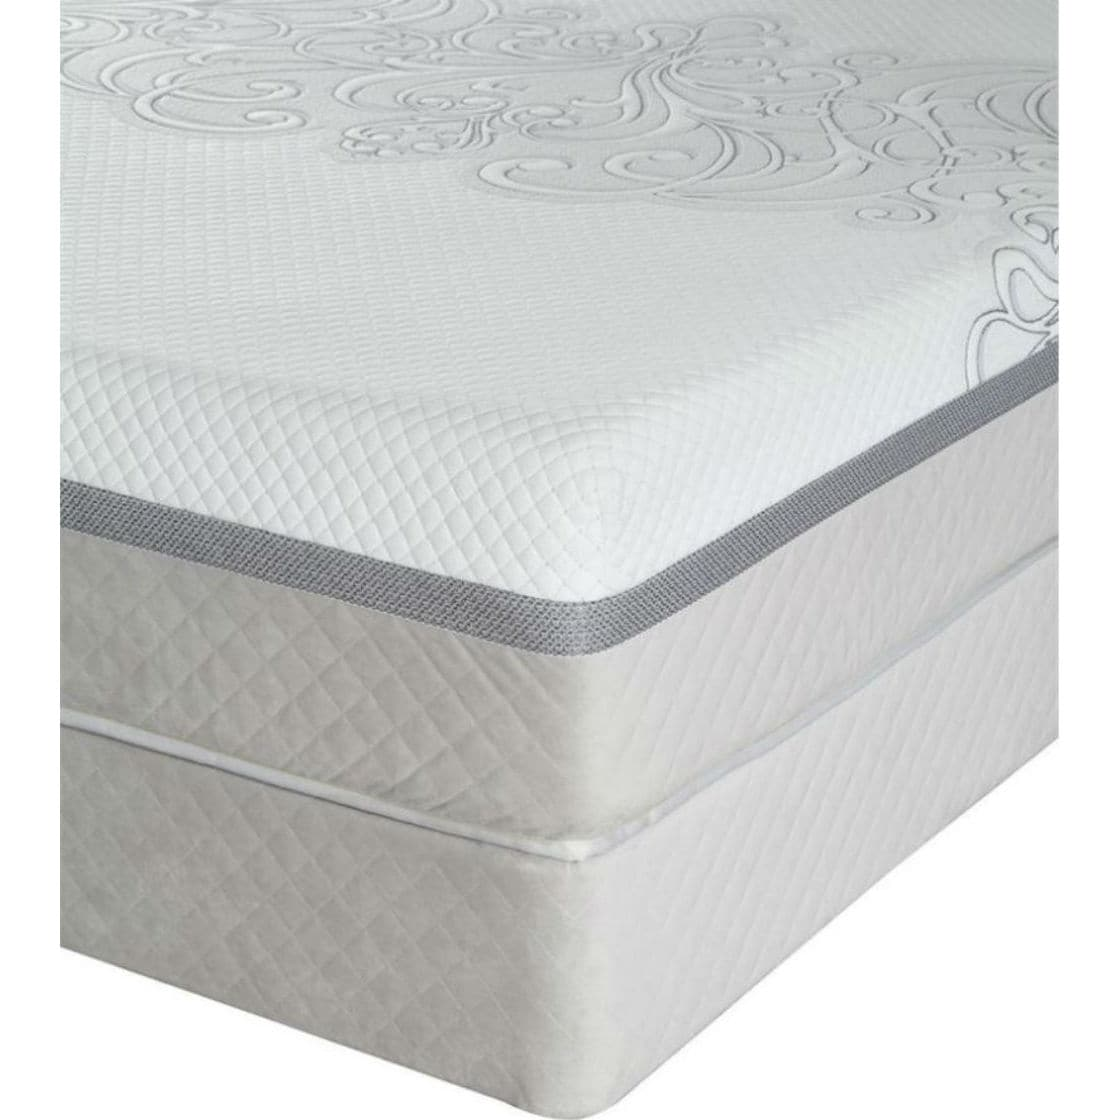 Sealy Posturepedic Hybrid Trust Cushion Firm King Size Mattress Set Free Shipping Today 9182701